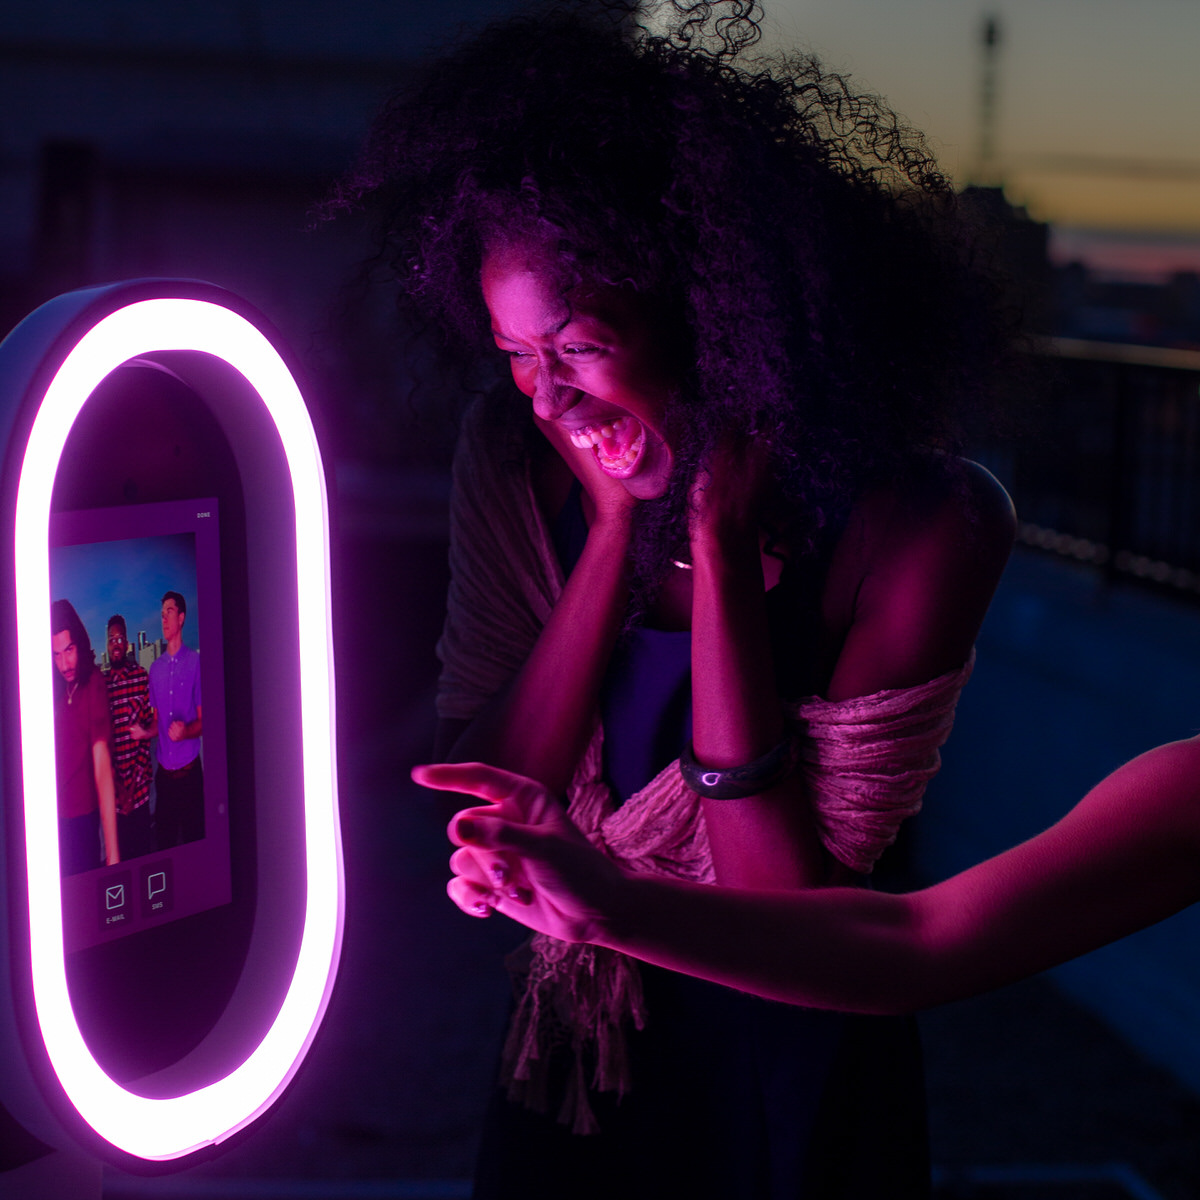 sturdy, futuristic design with loads of features, including filters and light effects that you can customize to your event theme. - $650 includes 2 hours with a photobooth attendant, set-up and break-down, instant delivery to smartphones, and a live gallery.